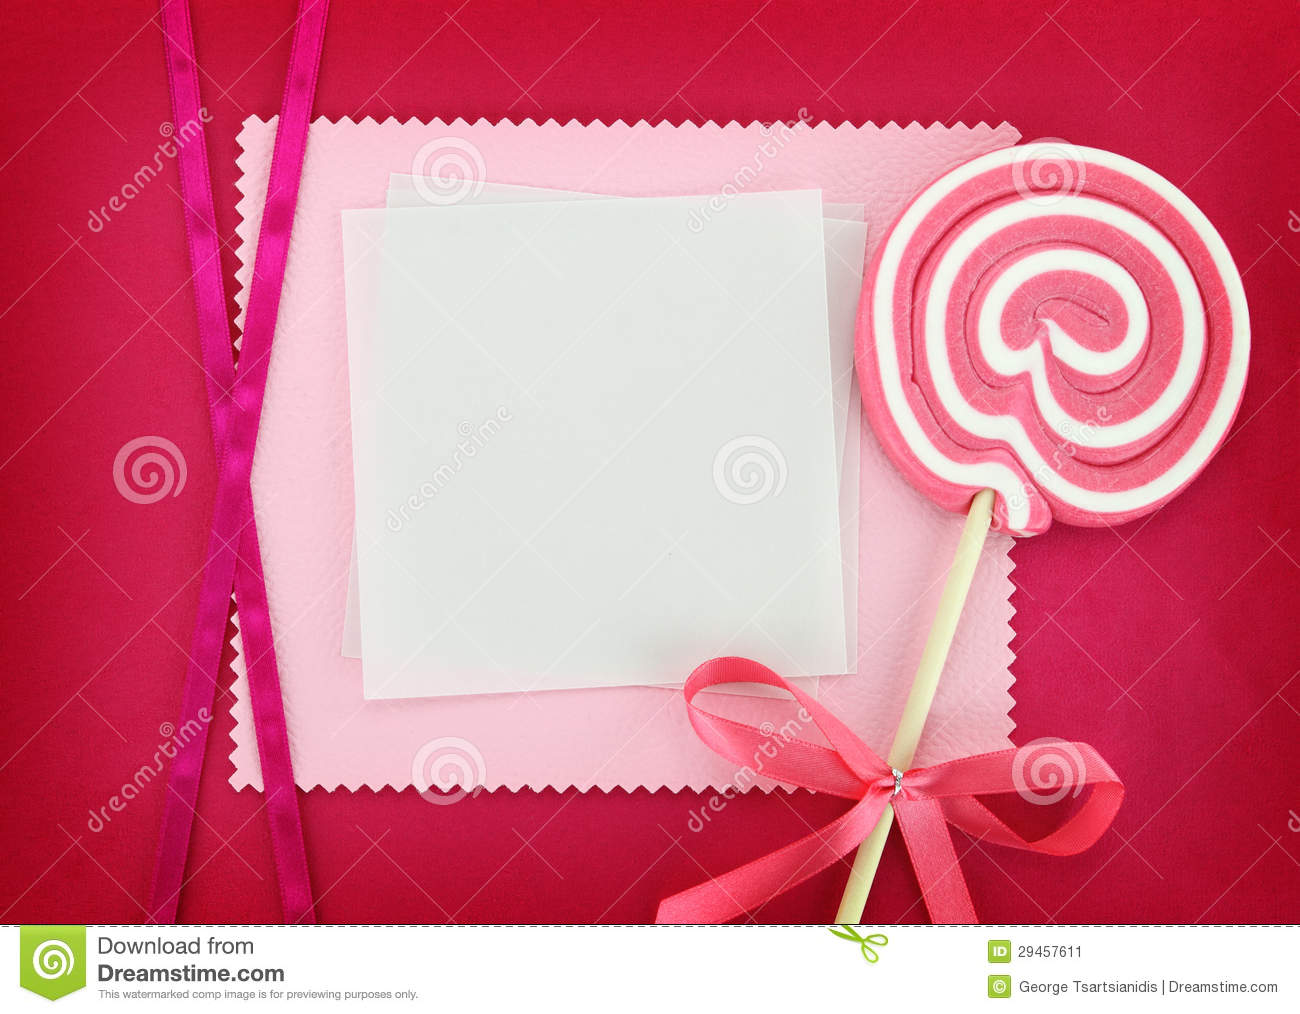 Baptism Invitation Card In Pink Stock Image - Image: 29457611